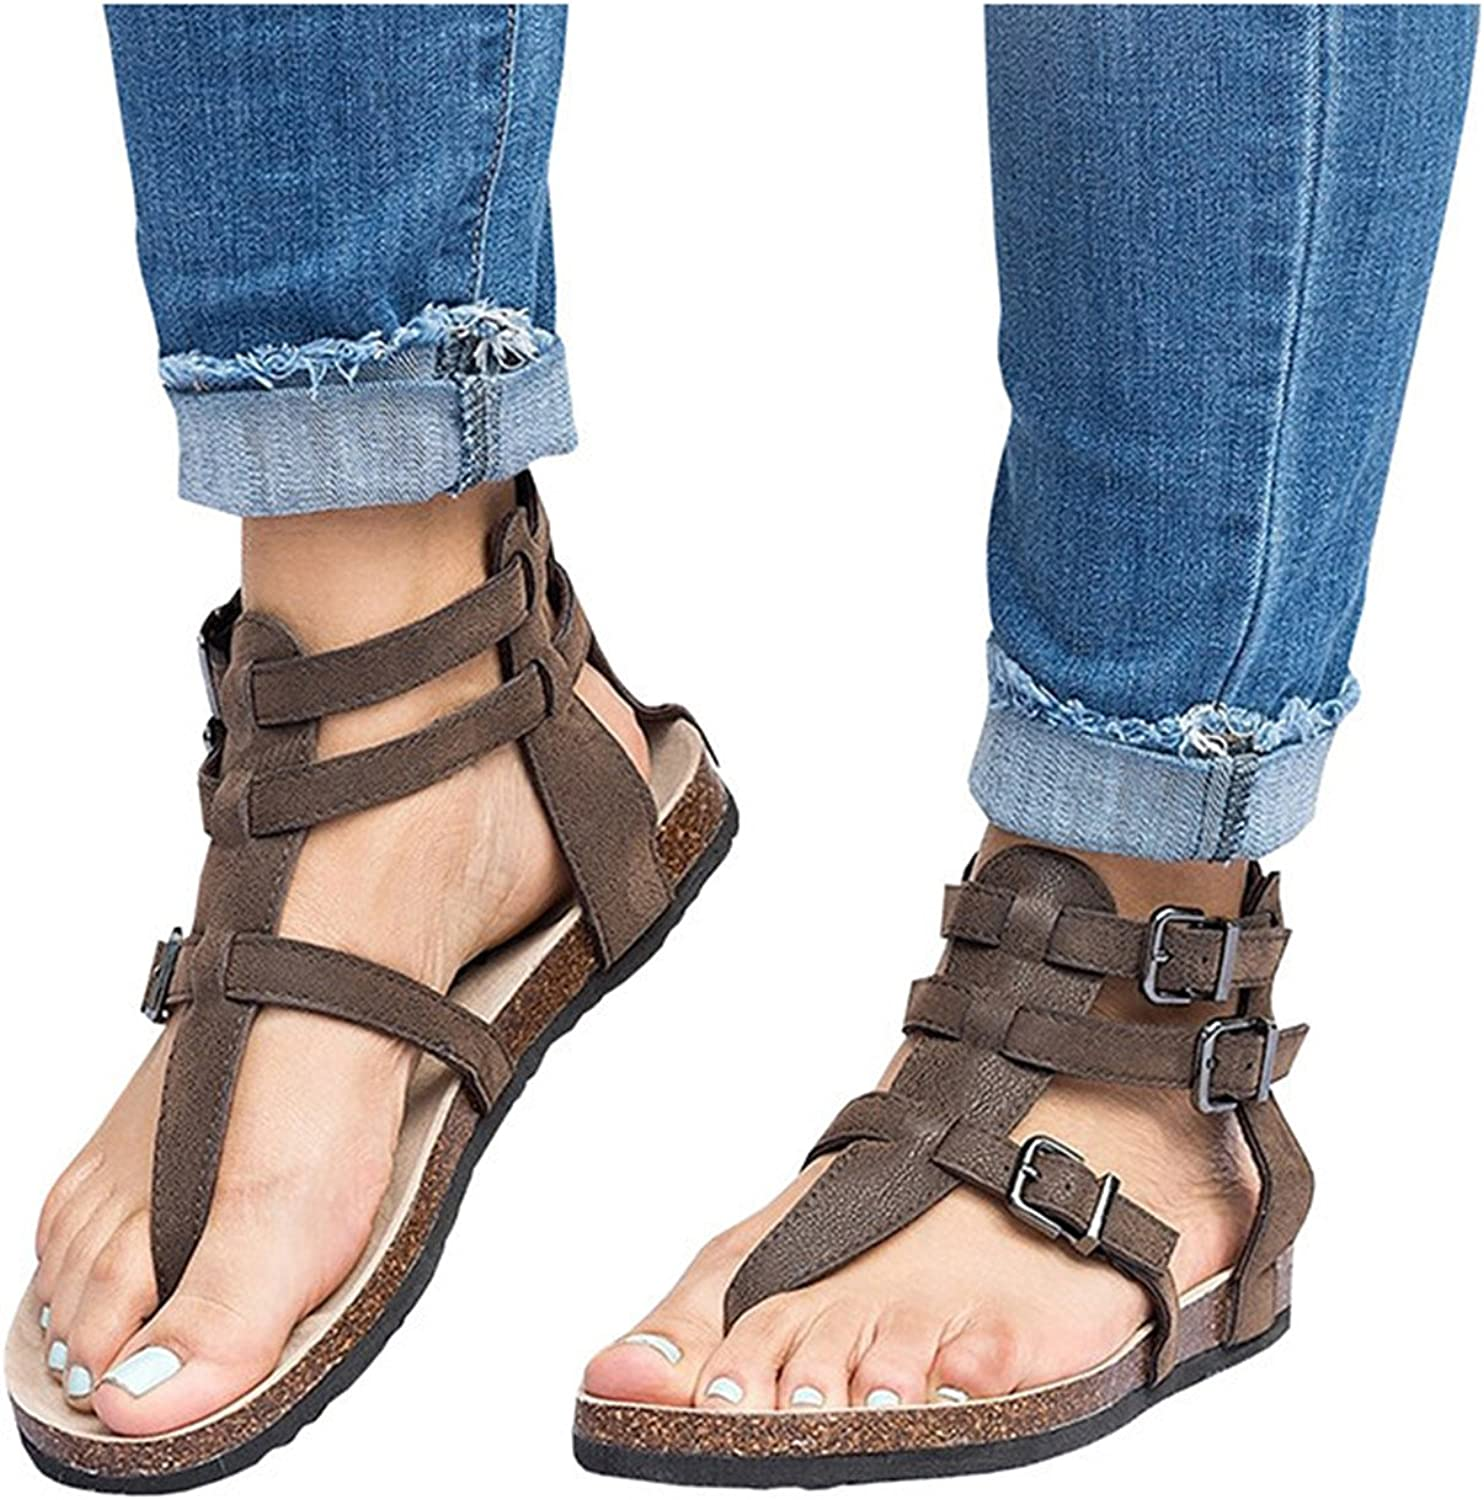 Jeff Tribble 2018 Summer Women Casual shoes Flat Buckle Sandals